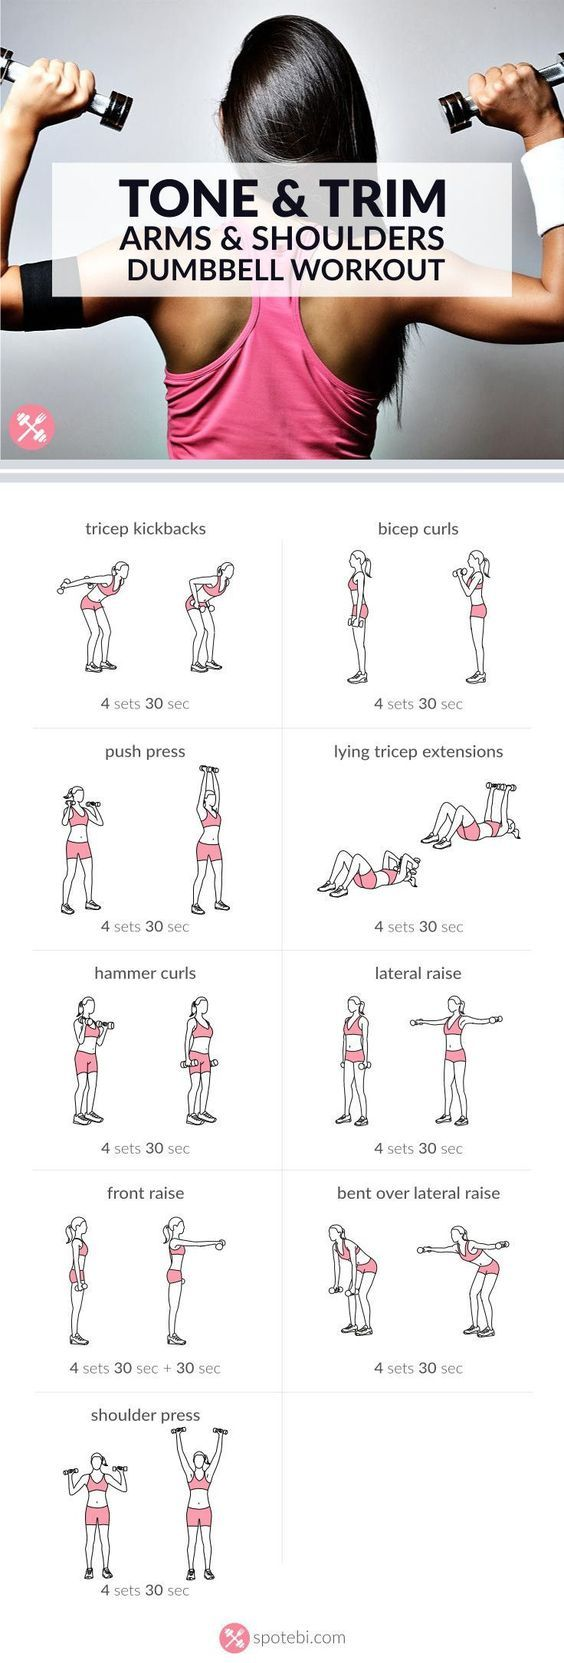 Get rid of arm fat and tone sleek muscles with the help of these dumbbell exercises. Sculpt, tone and firm your biceps, triceps and shoulders in no time. You'll be rocking cute summer tanks and halter tops before you know it.